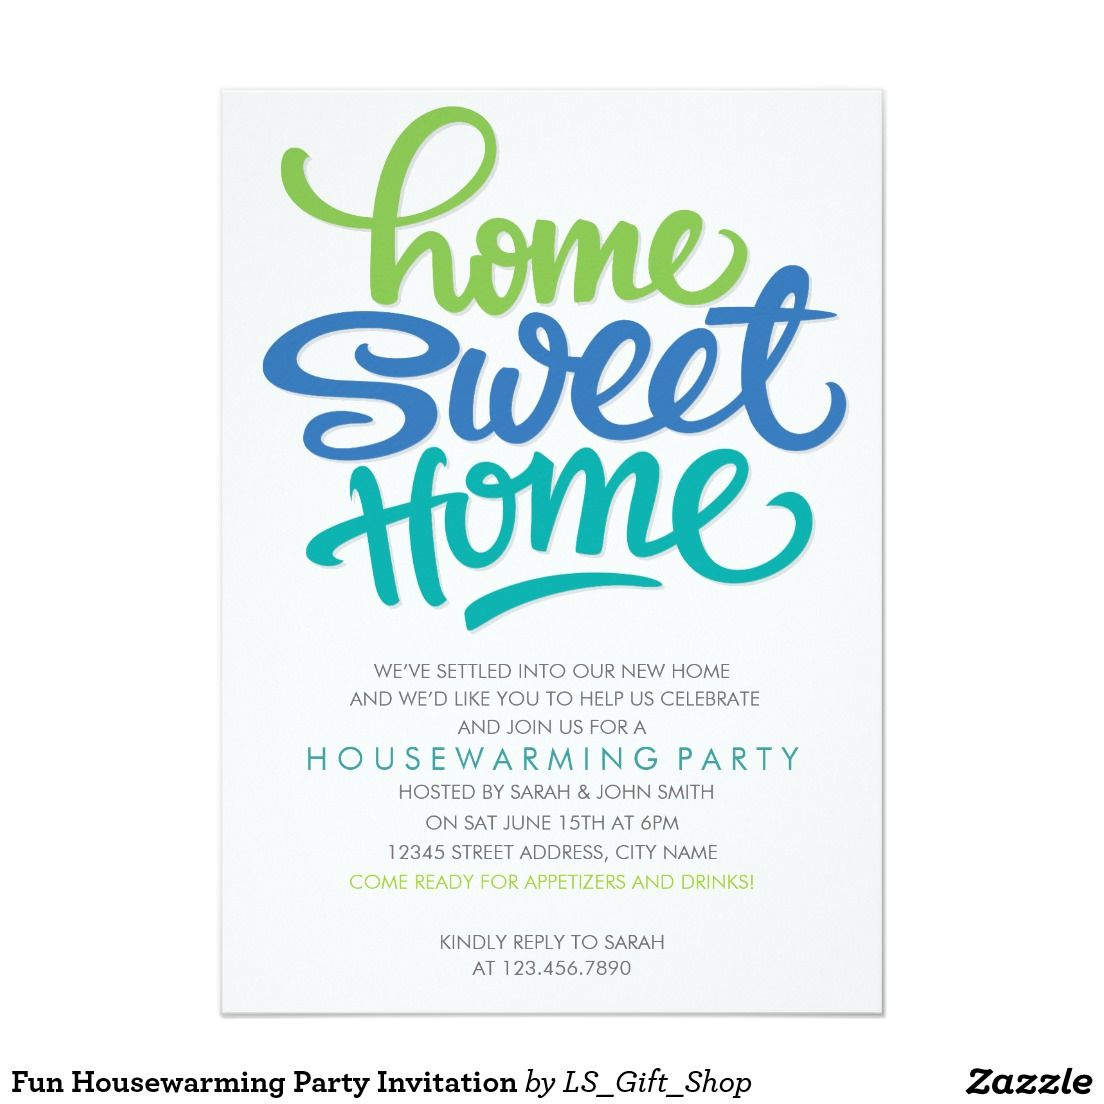 Fun housewarming party invitation invitation cards pinterest fun housewarming party invitation x invitation card stopboris Choice Image